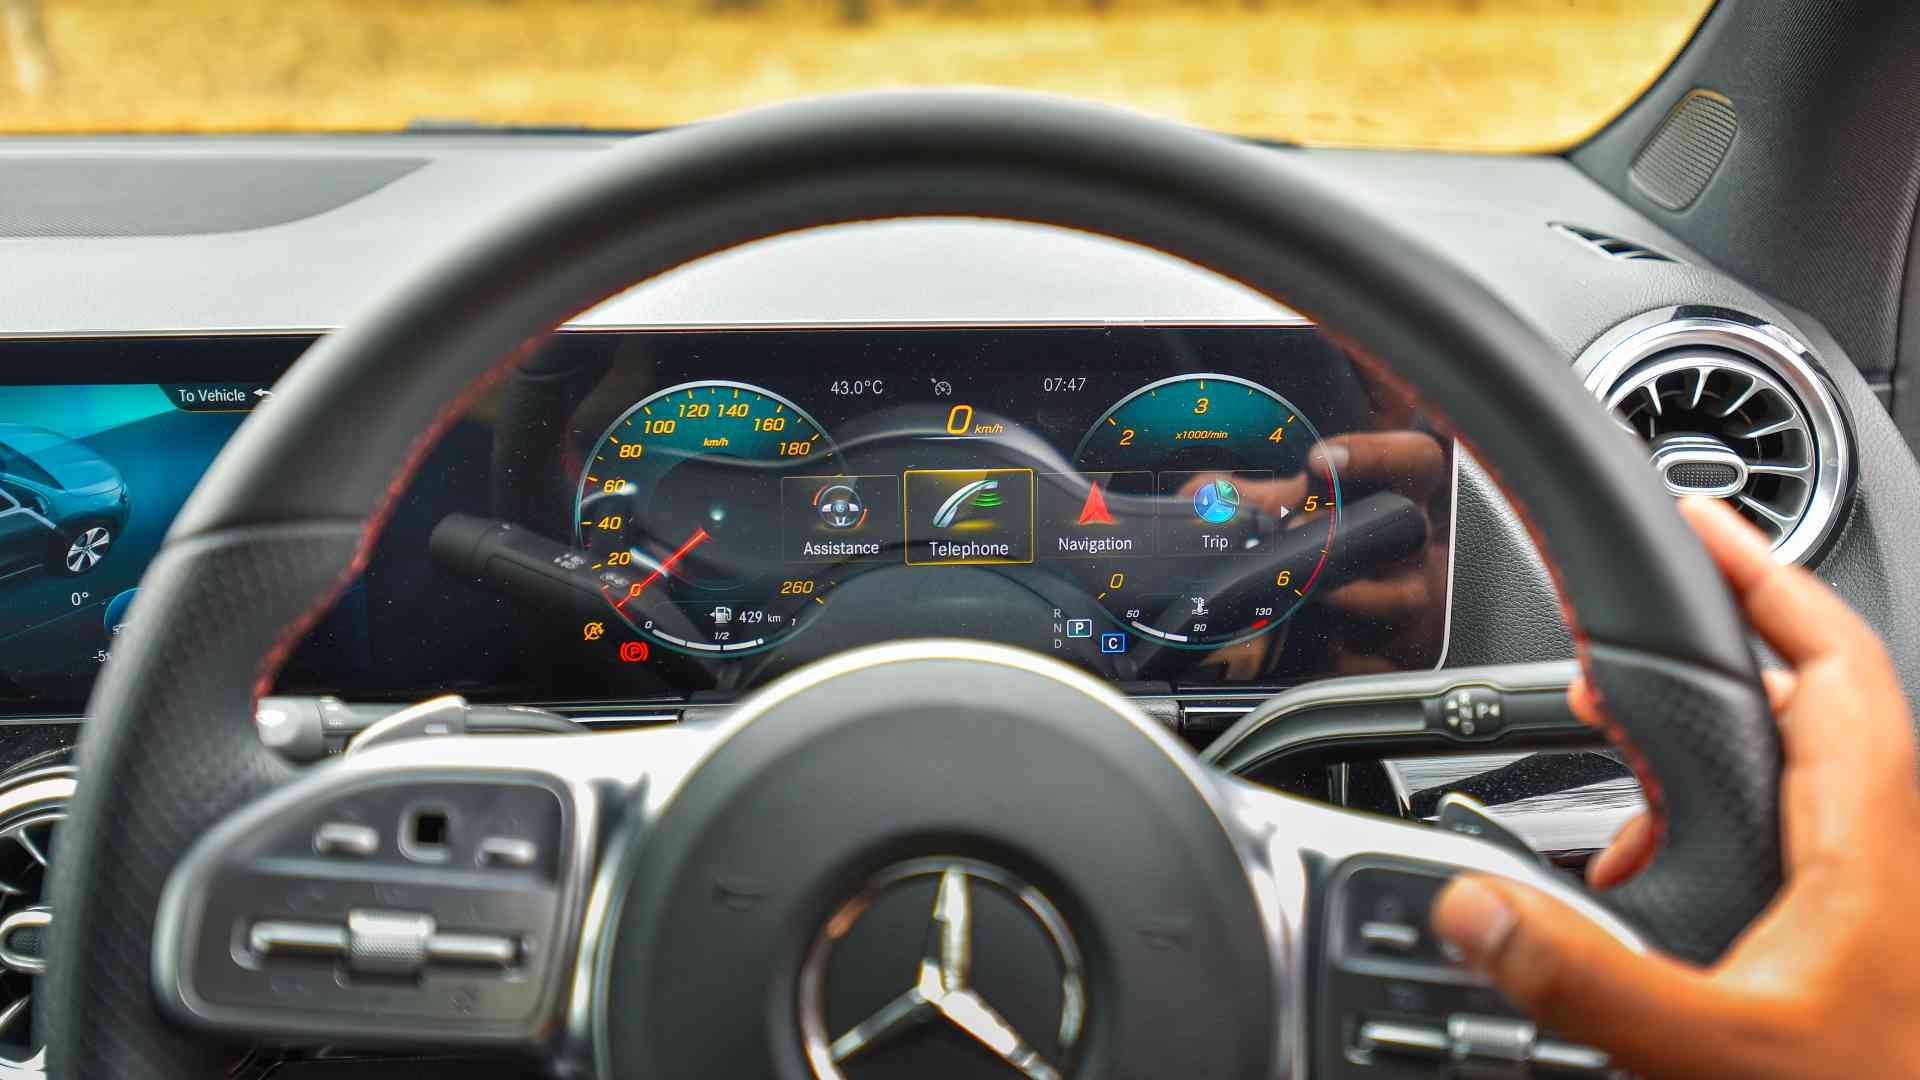 Using the capacitive controls for the infotainment can be a frustrating experience. Image: Overdrive/Anis Shaikh